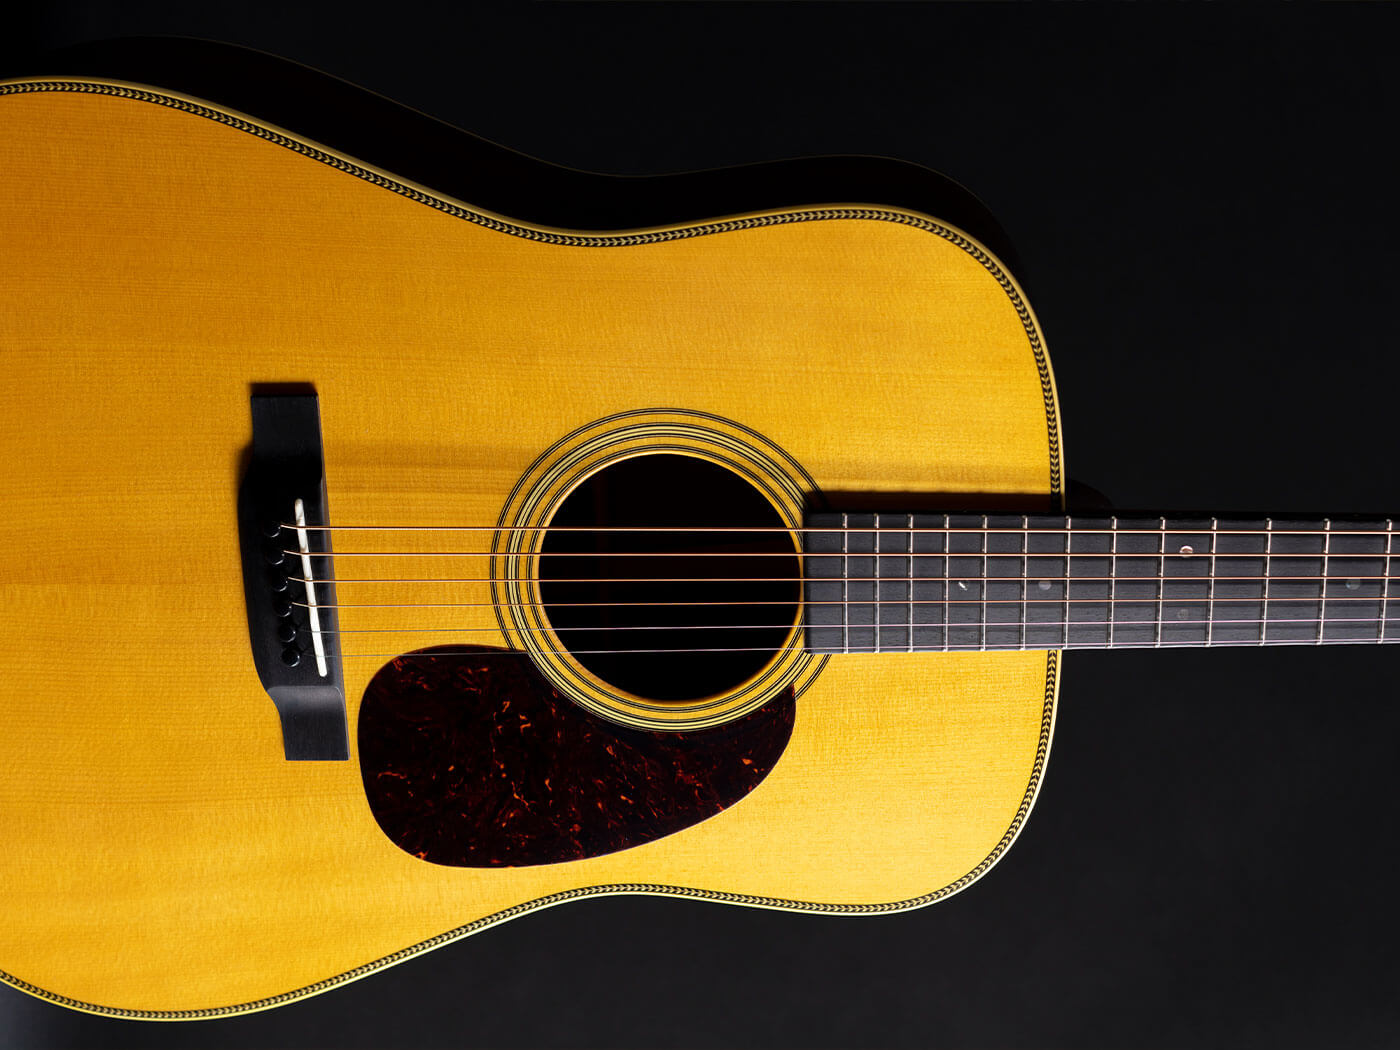 Martin D-35 six String David Gilmour signature